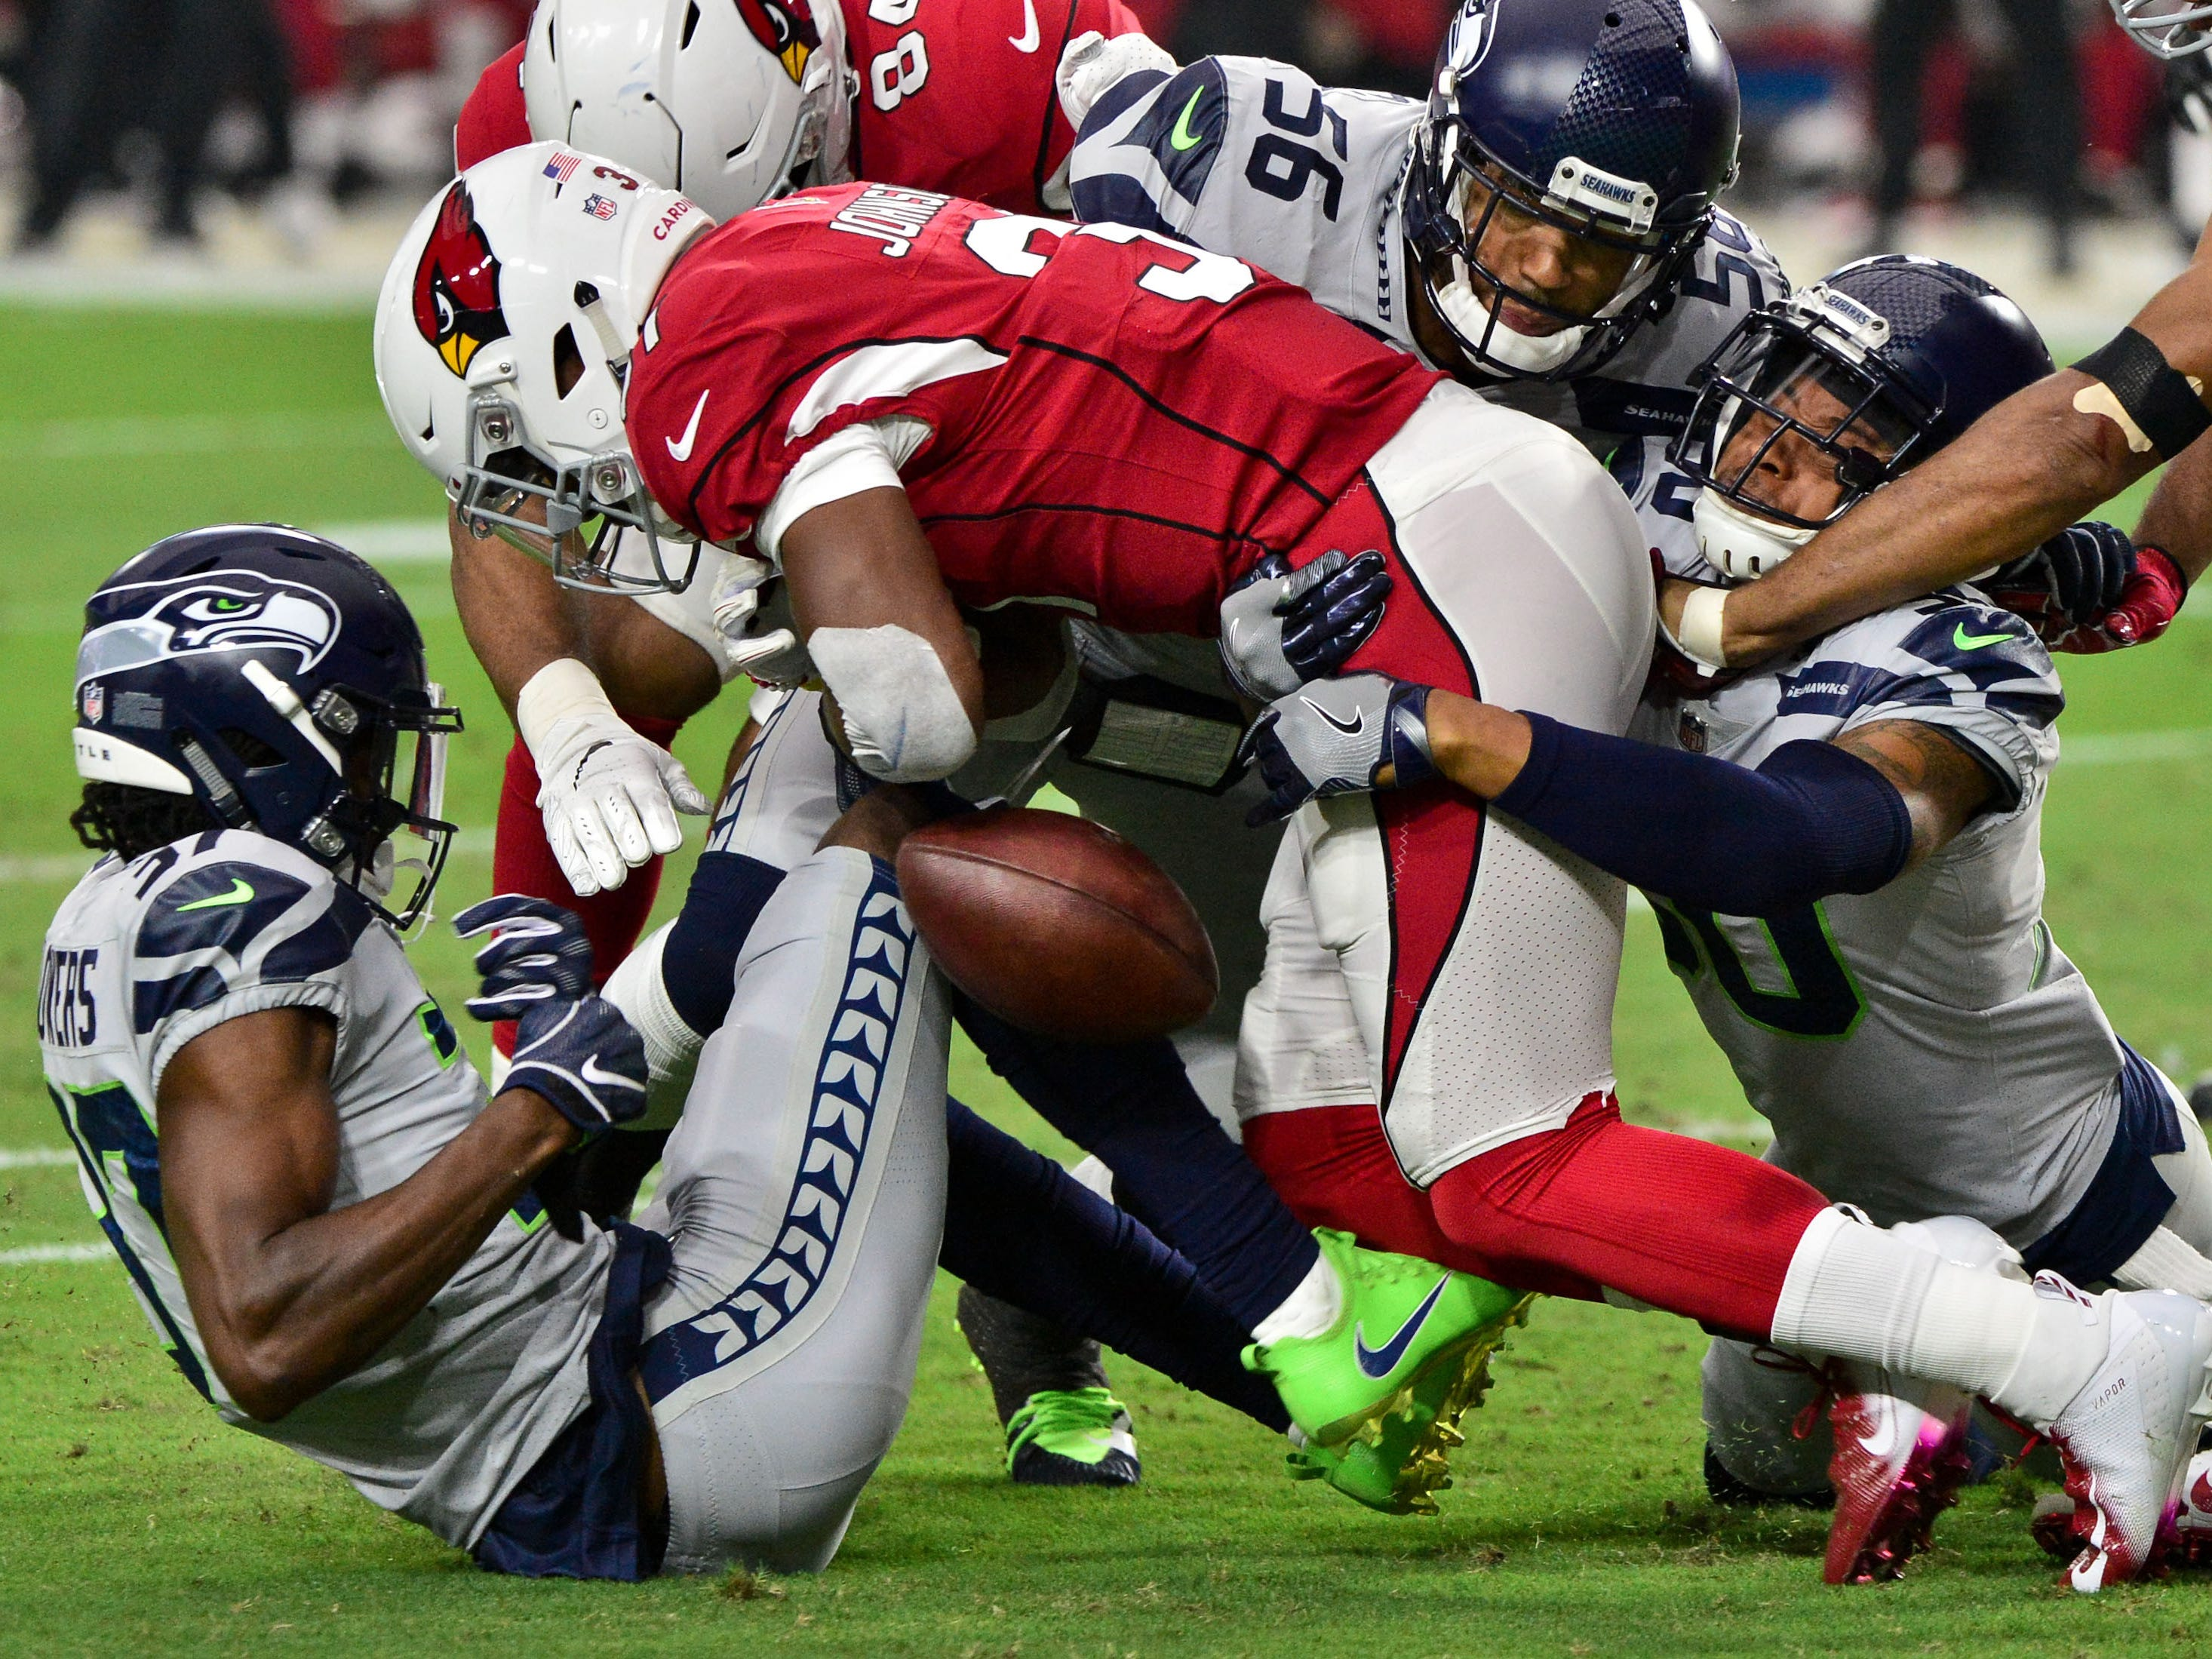 Arizona Cardinals running back David Johnsonfumbles the ball while being tackled in the first half against the Seattle Seahawks.